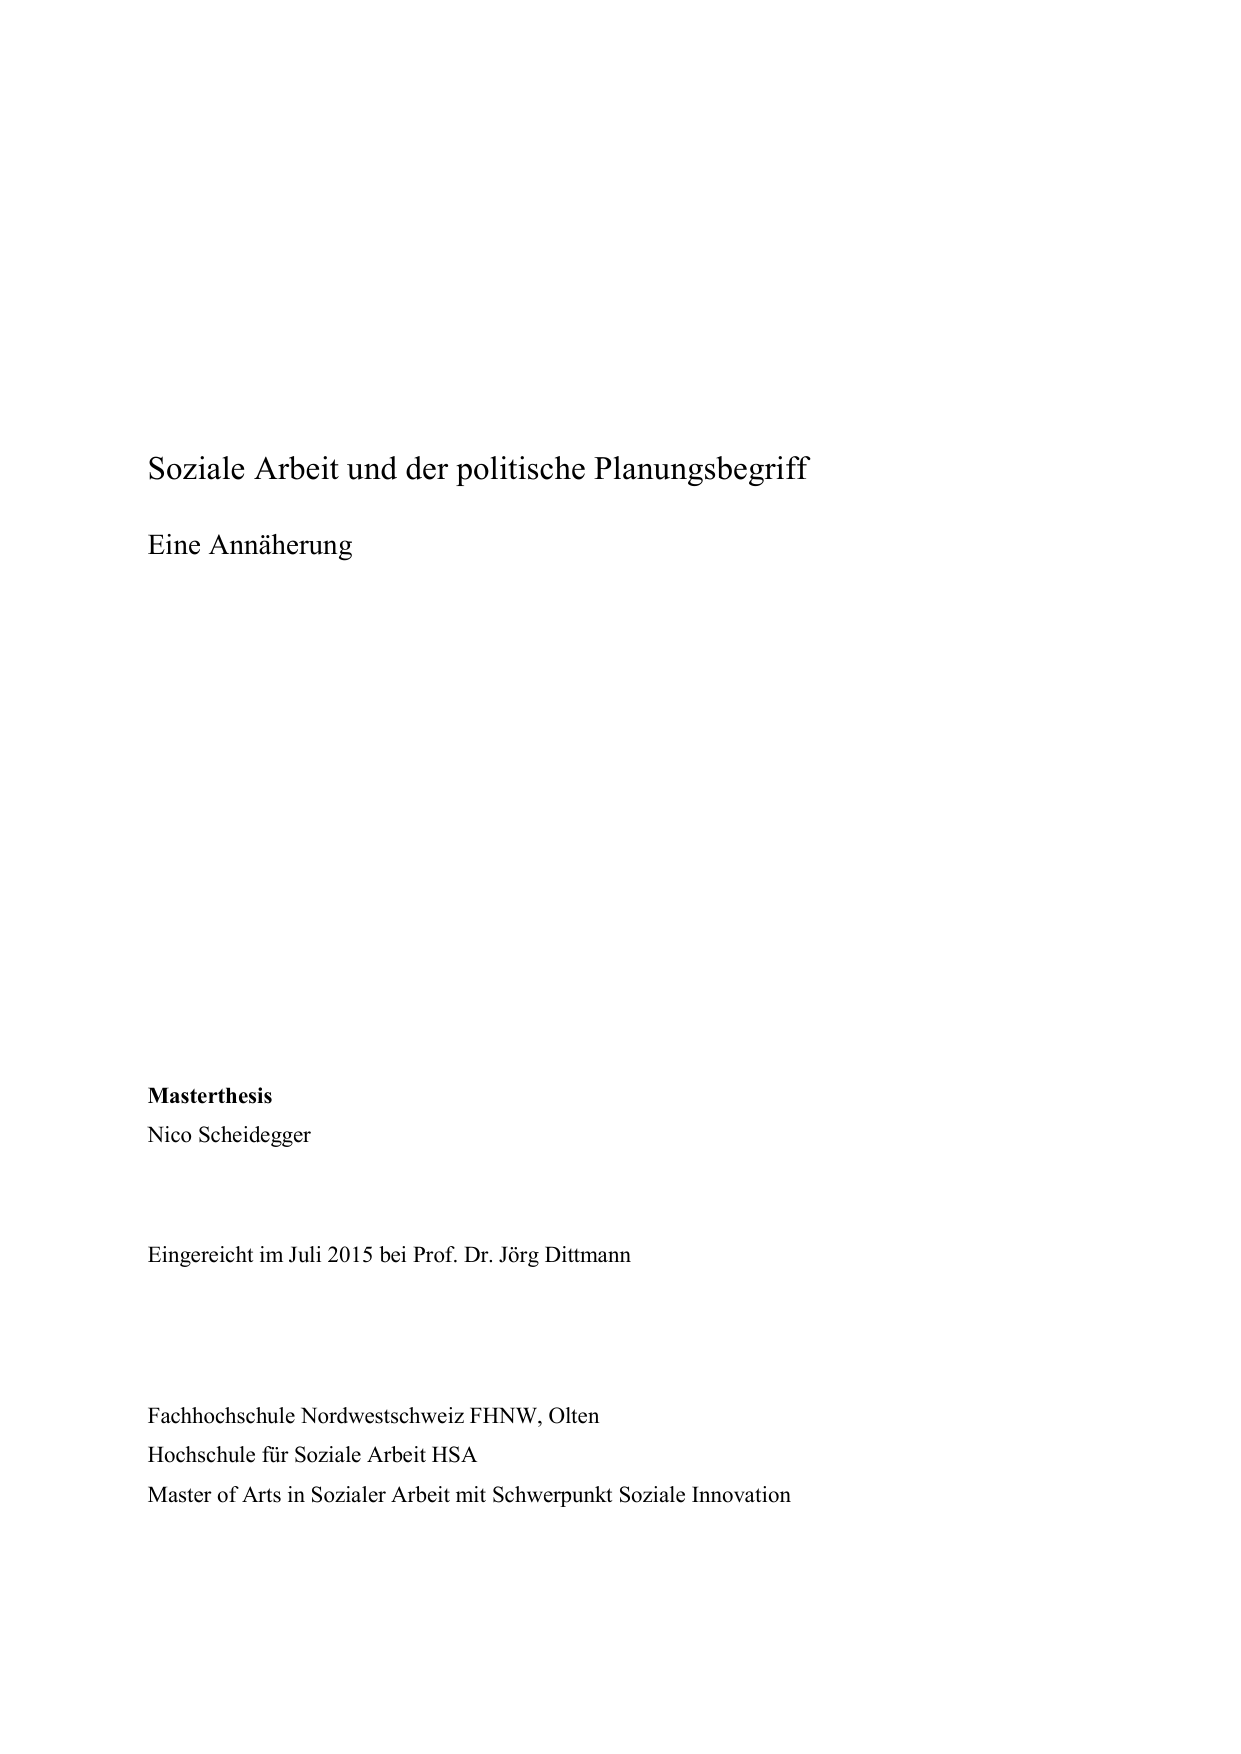 master thesis fhnw soziale arbeit